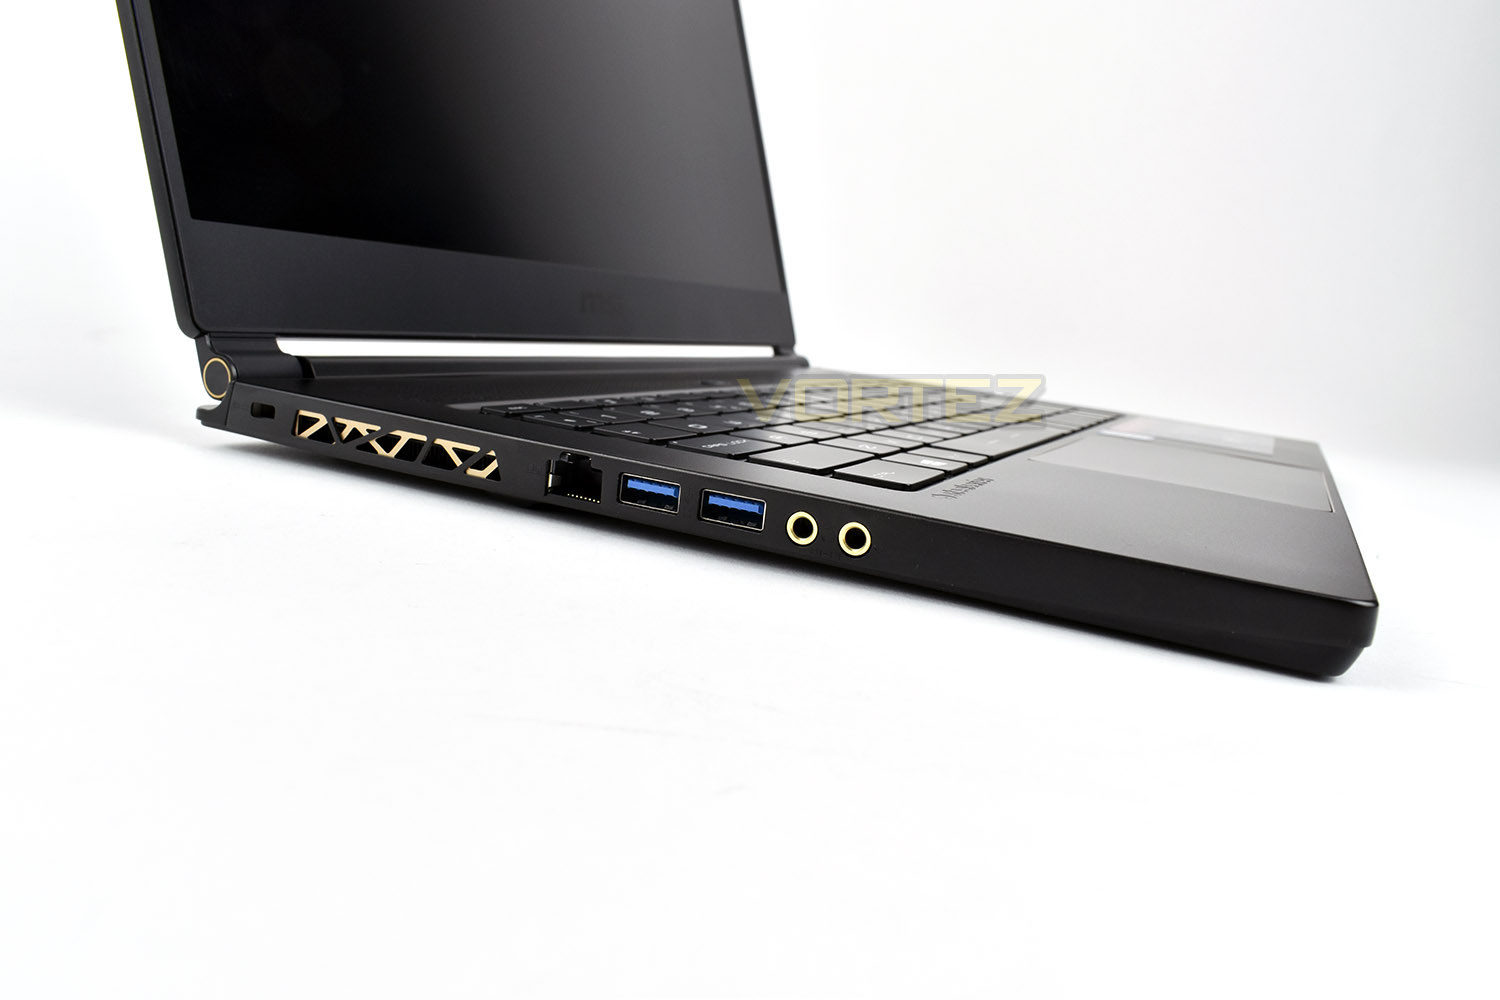 MSI GS65 Stealth Thin 8RF Review - Closer Look (Continued)